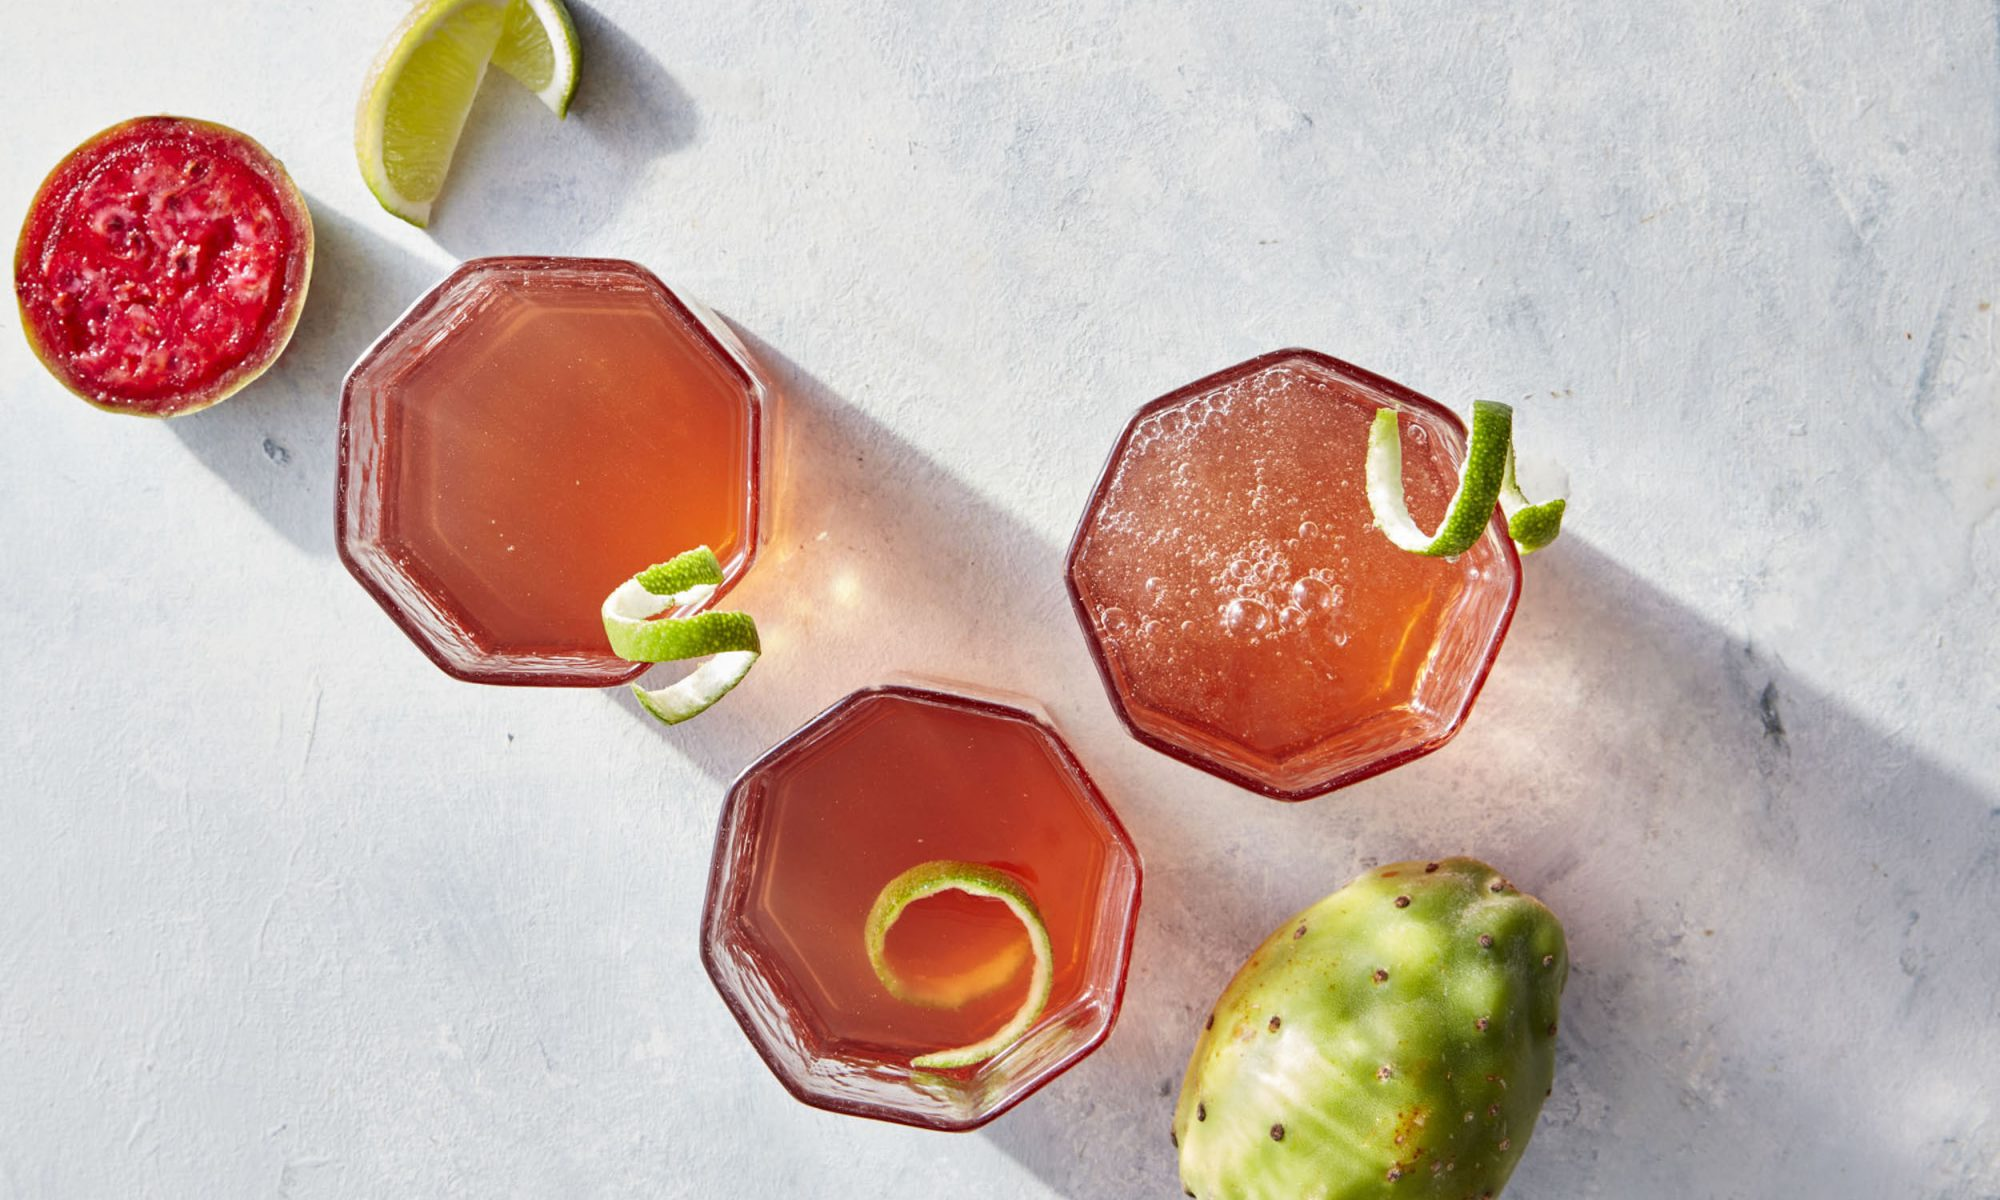 Cooking Light July 2017Lets Get Cooking-BeveragesCactus Water and Tequila Cocktail